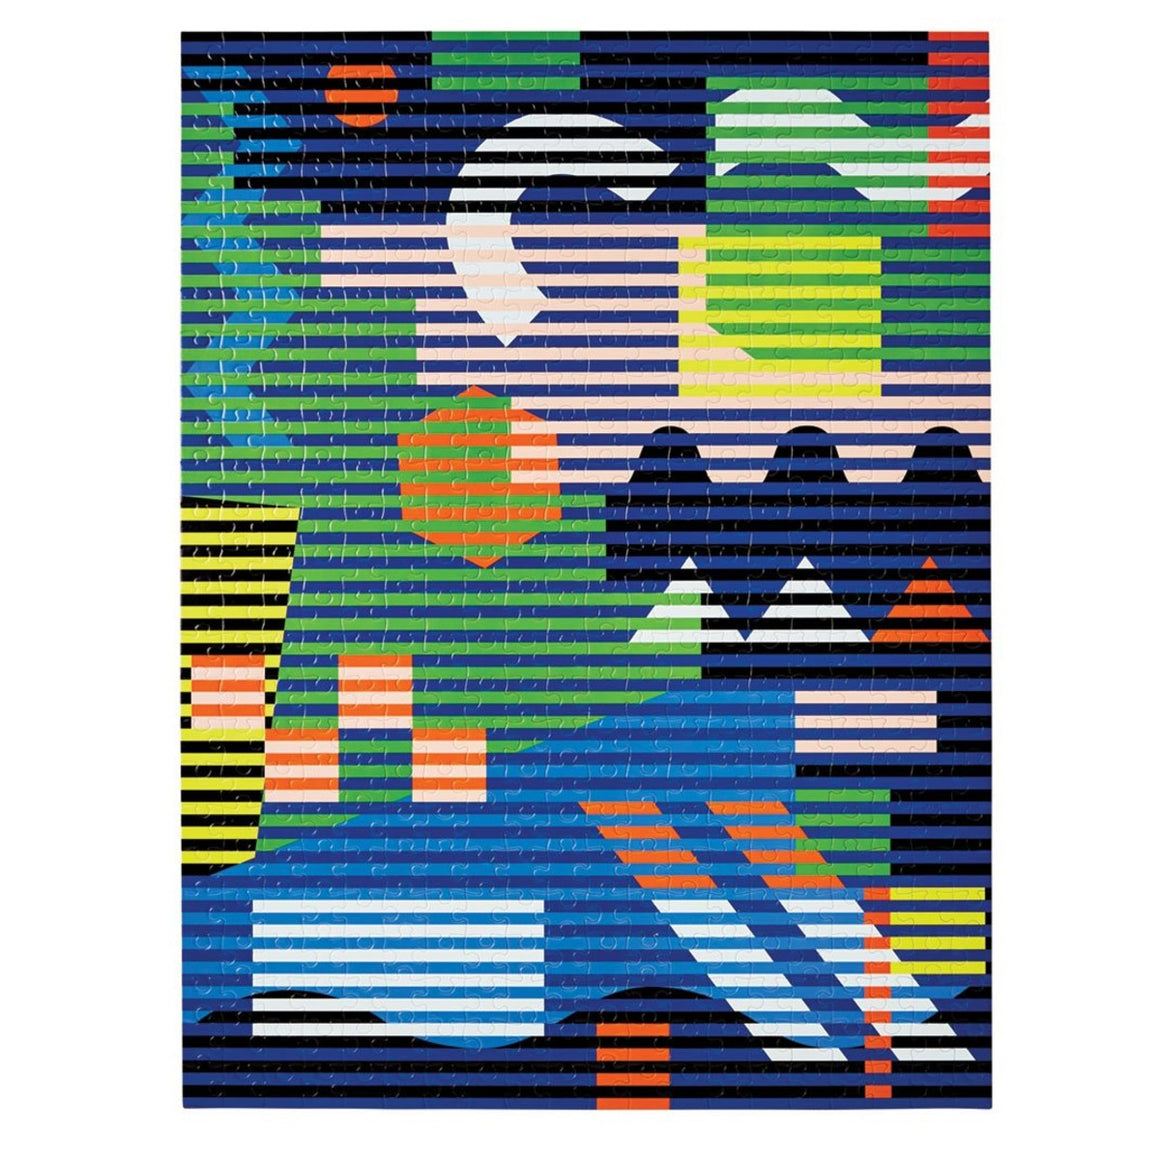 A 500 piece puzzle featuring an abstract design by Dusen Dusen. Geometric shapes and block colours are overlayed with horizontal stripes in bold and contrasting shades of blue, green, yellow, pink, red, orange, black and white.